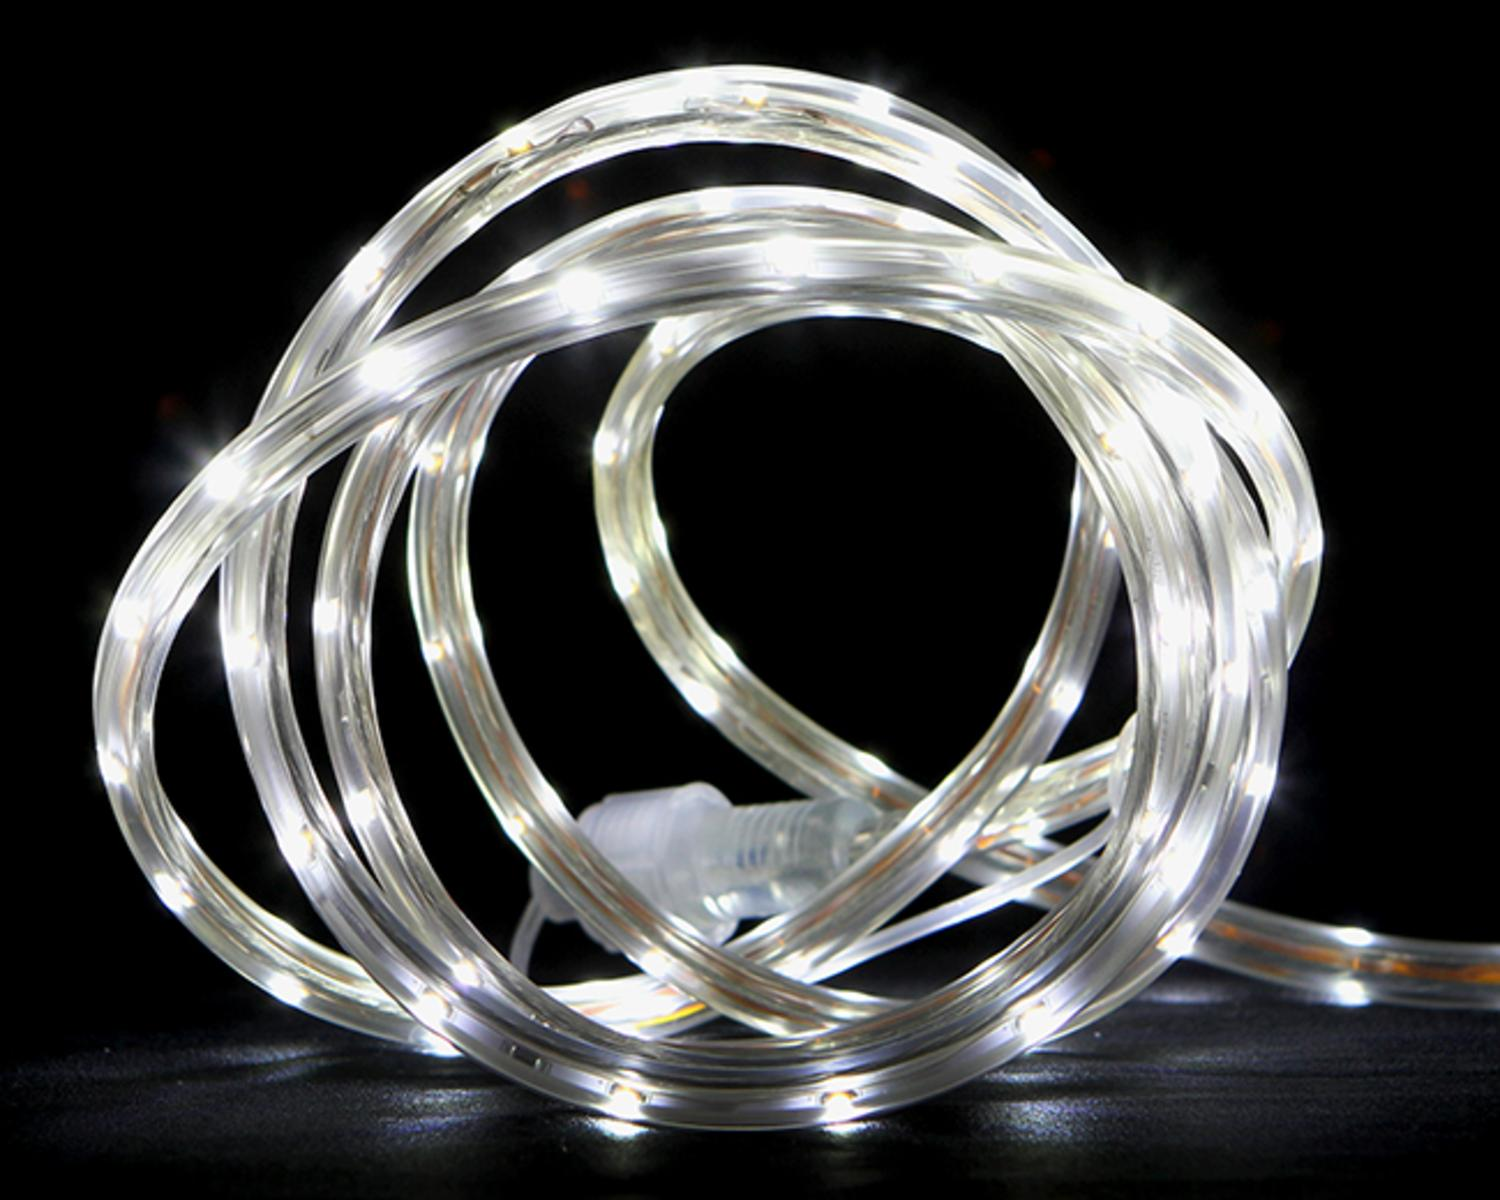 10' Pure White LED Indoor Outdoor Christmas Linear Tape Lighting by CC Christmas Decor